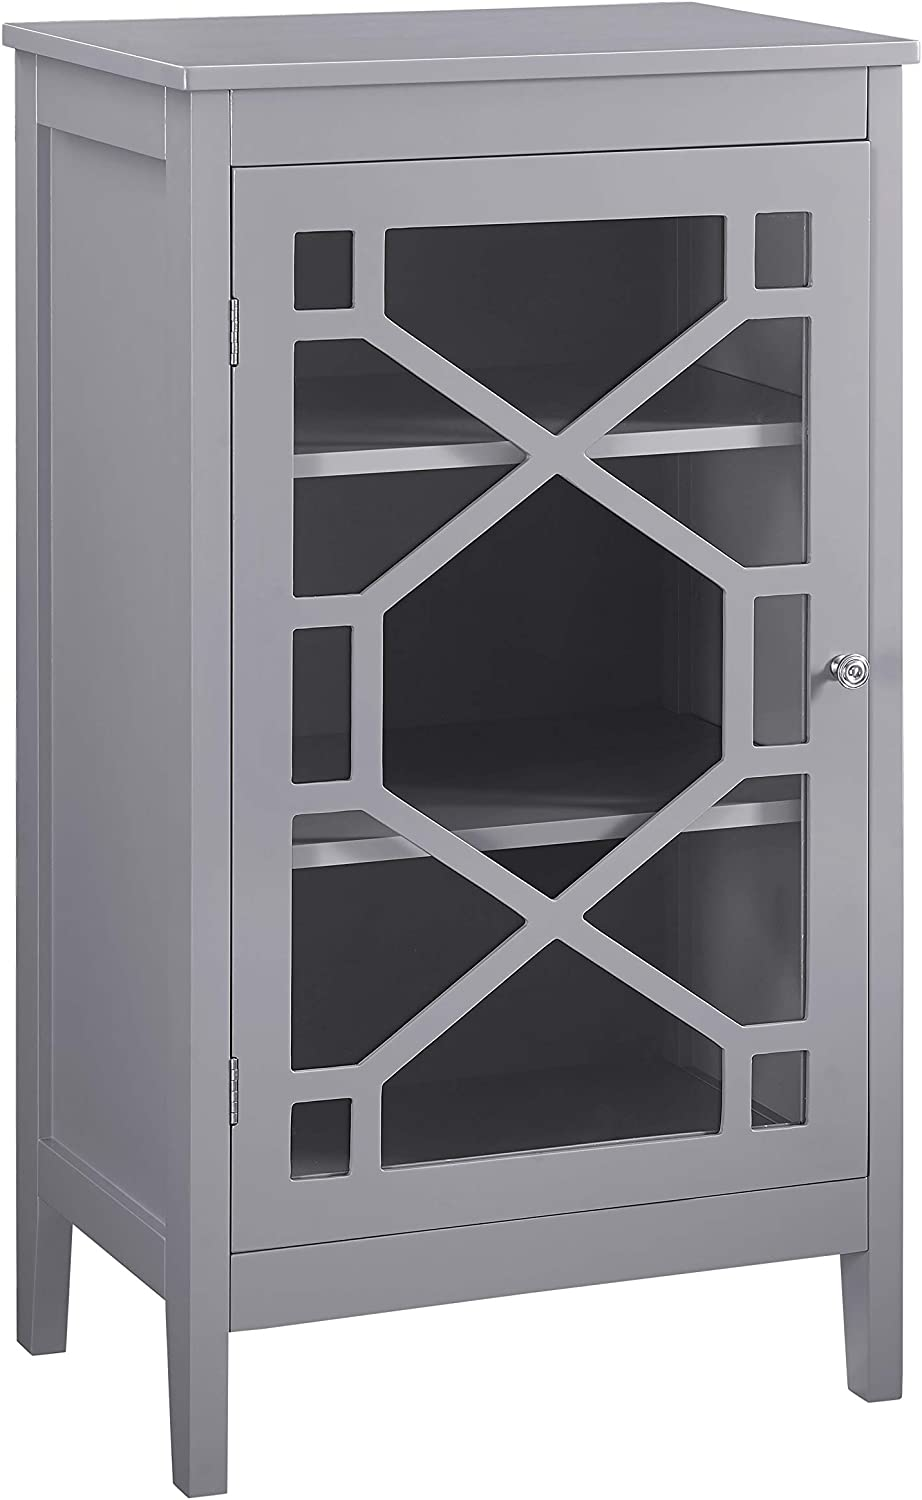 Benjara Single Door Wooden Cabinet with 3 Storage Compartments, Small, Gray